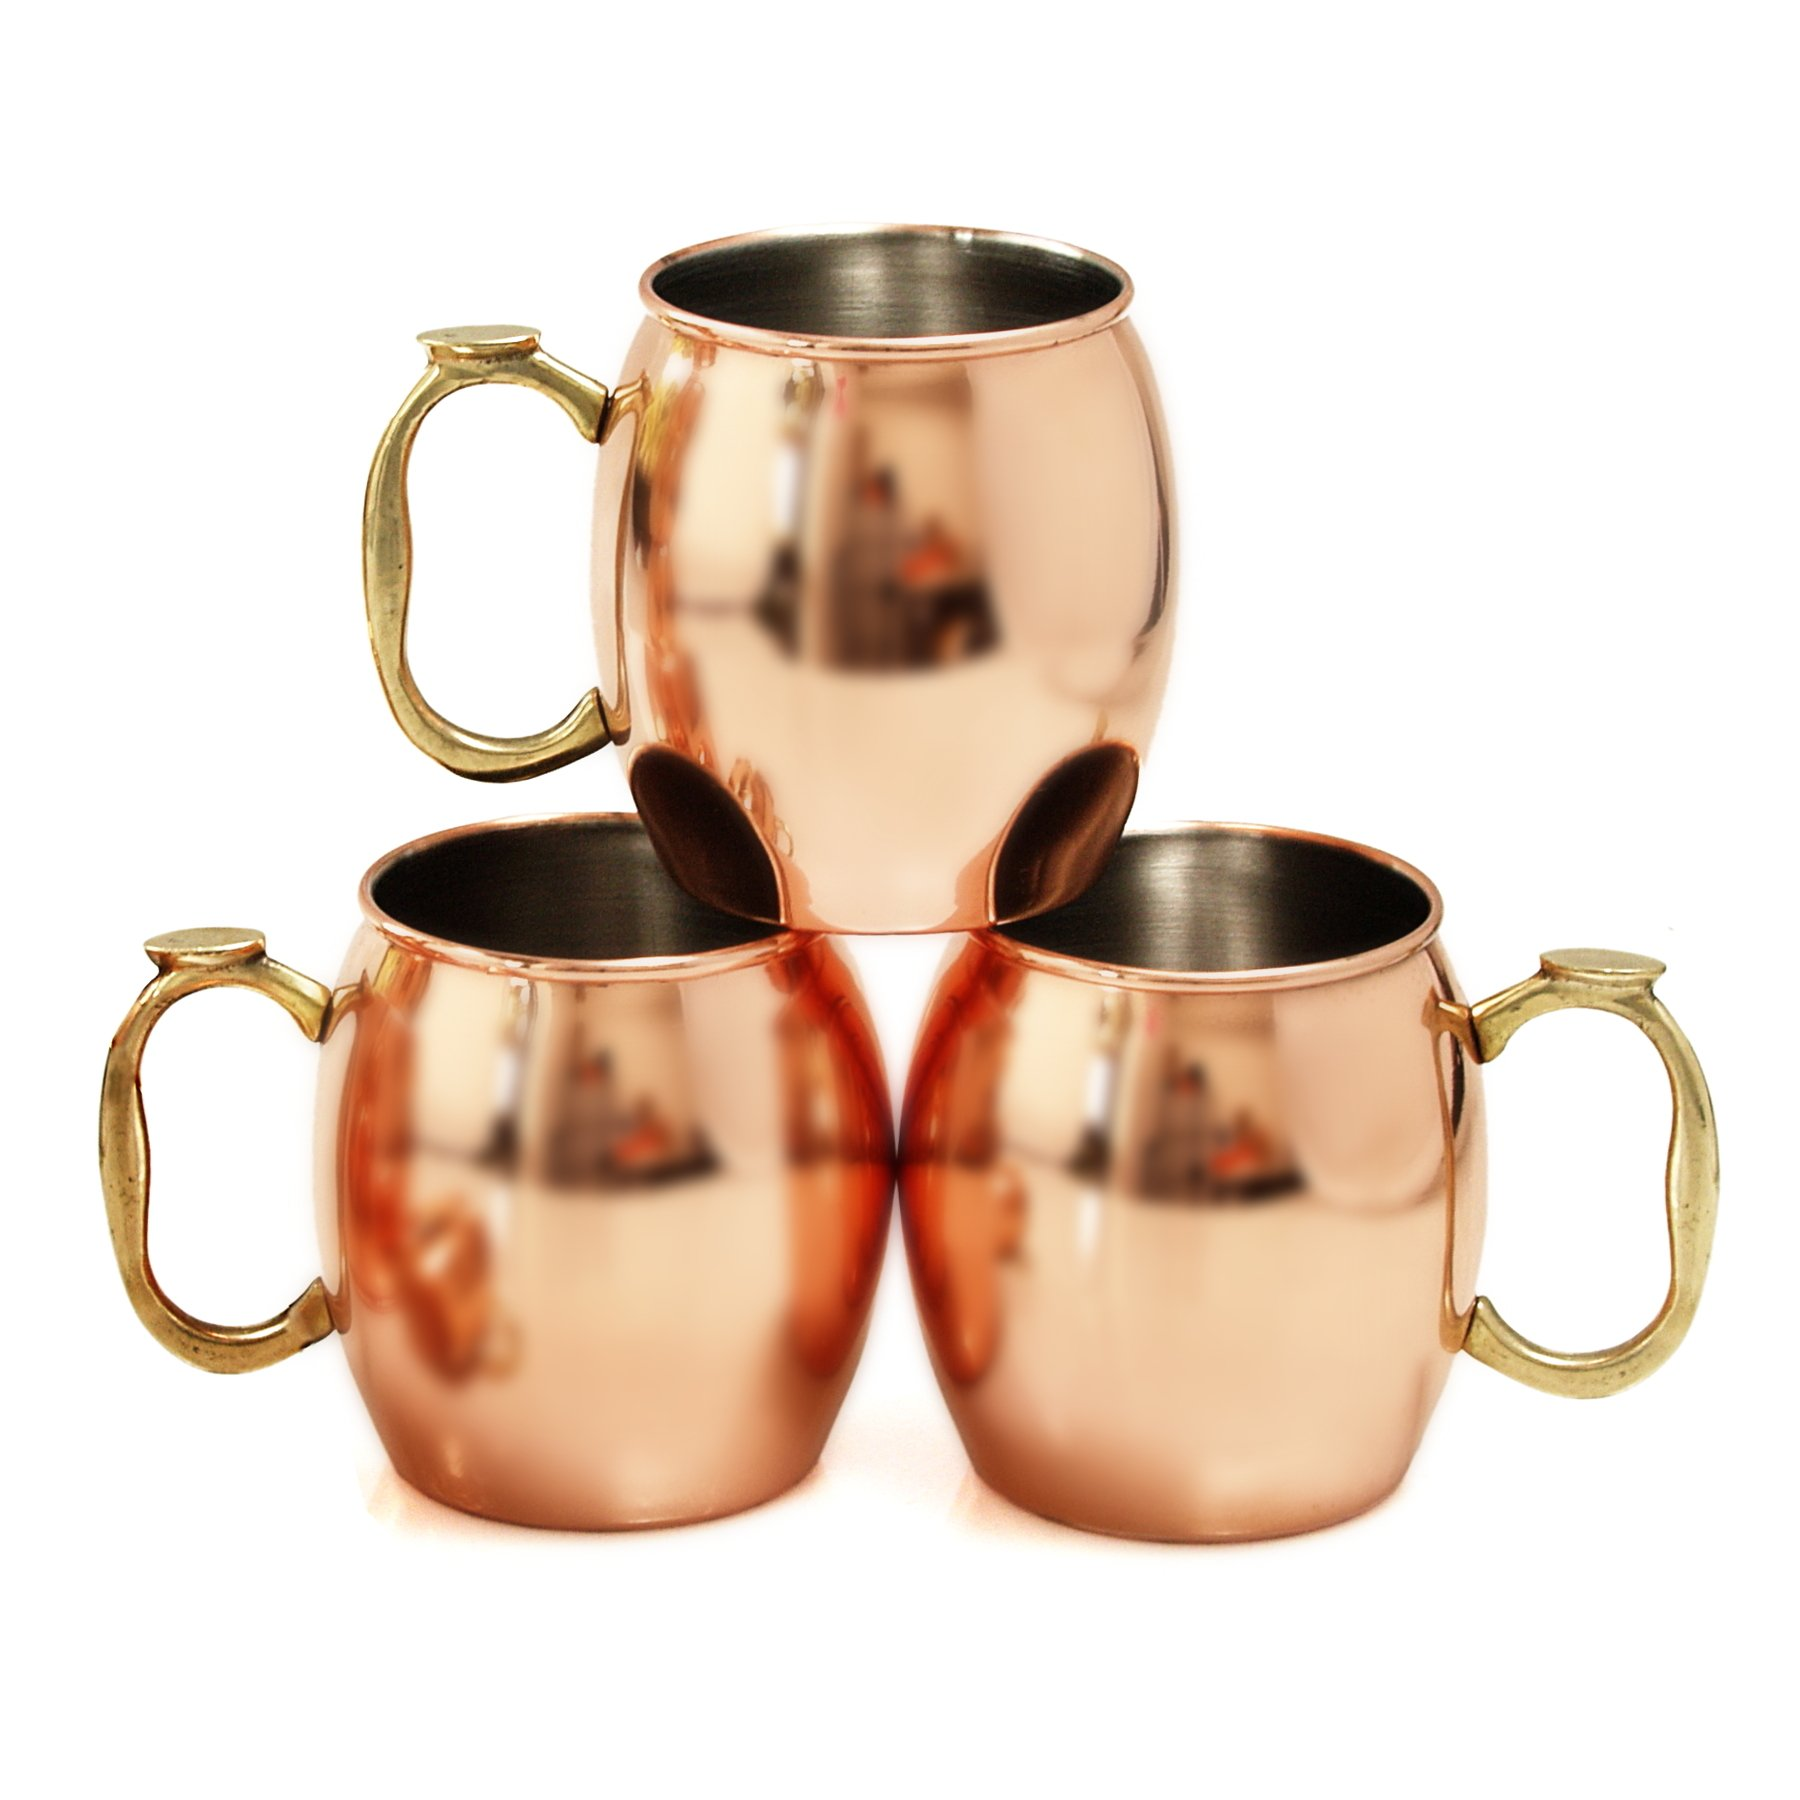 Copper-Plated 20 Ounce Moscow Mule Drinking Mug, Set of 3